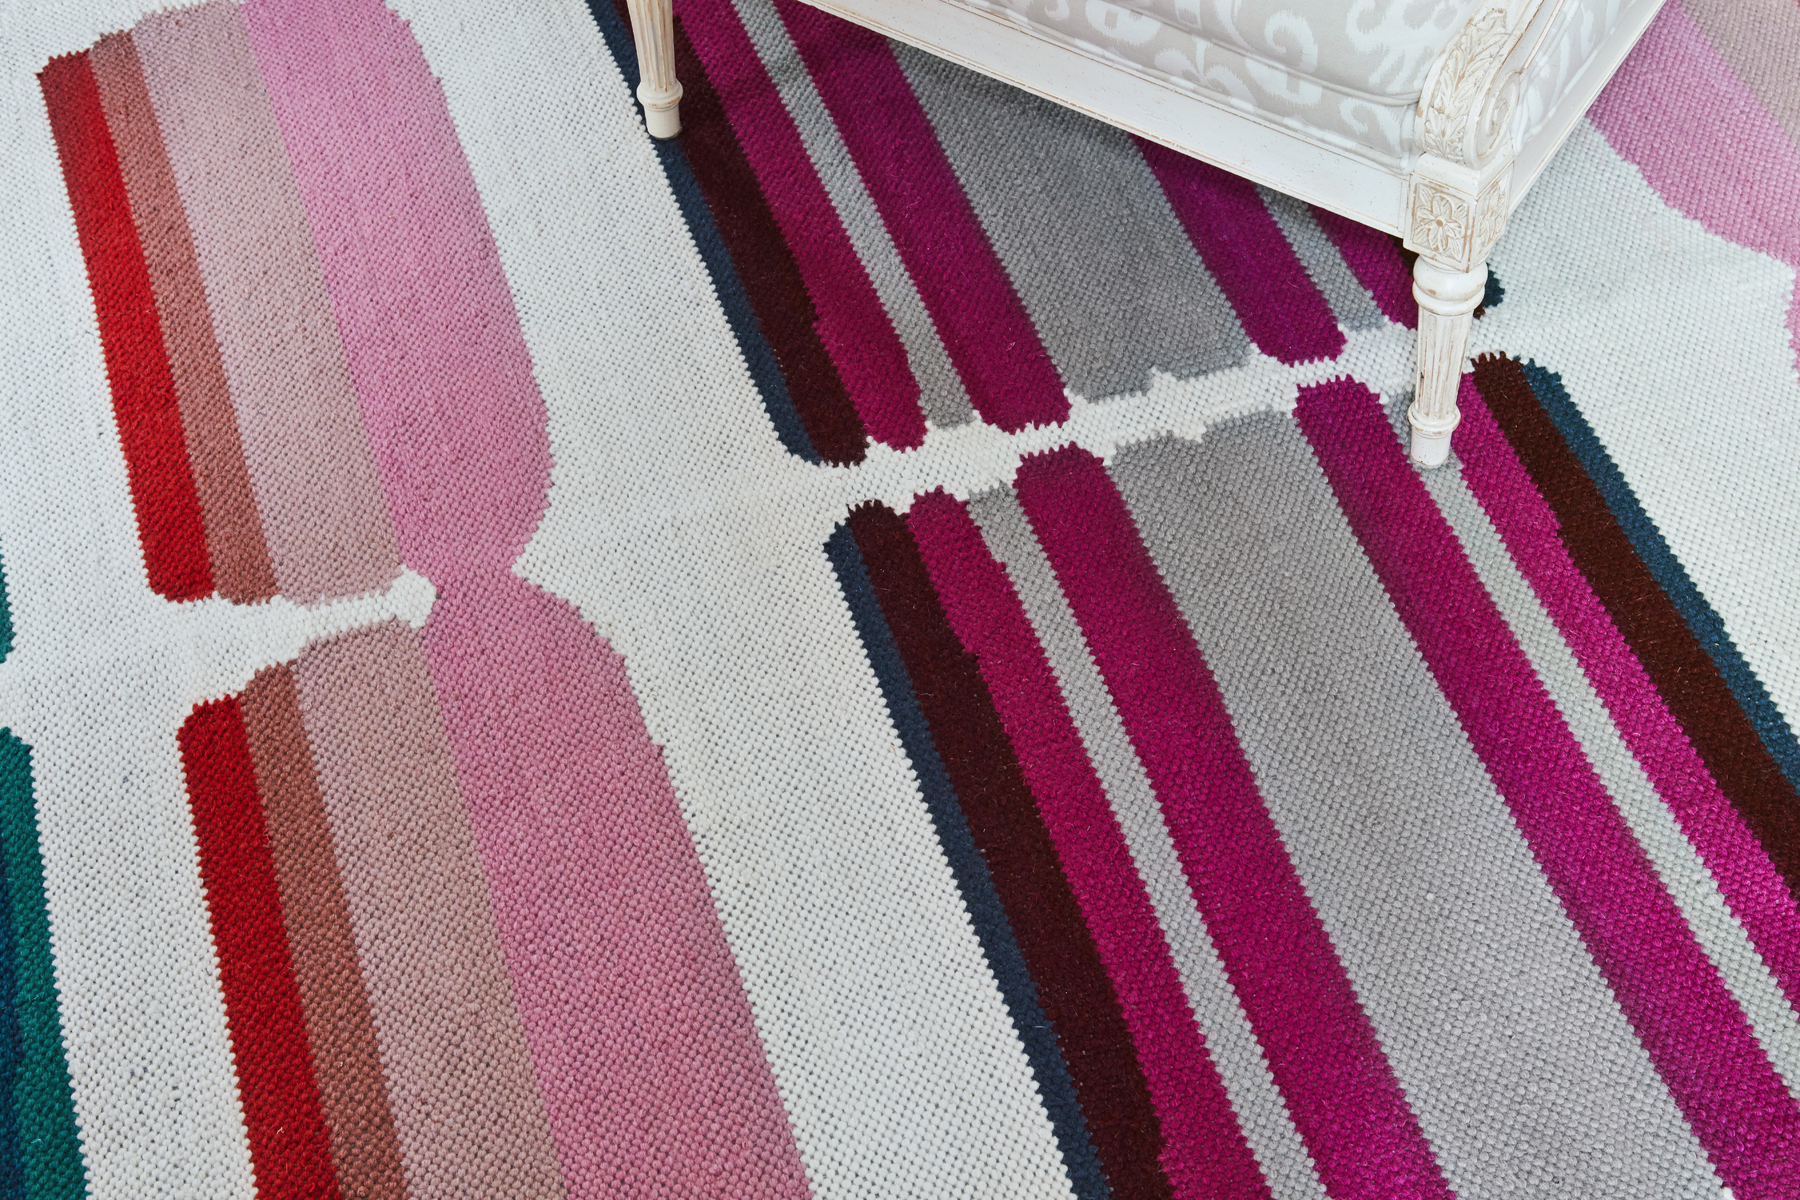 HOW ARE YOUR RUGS MADE?